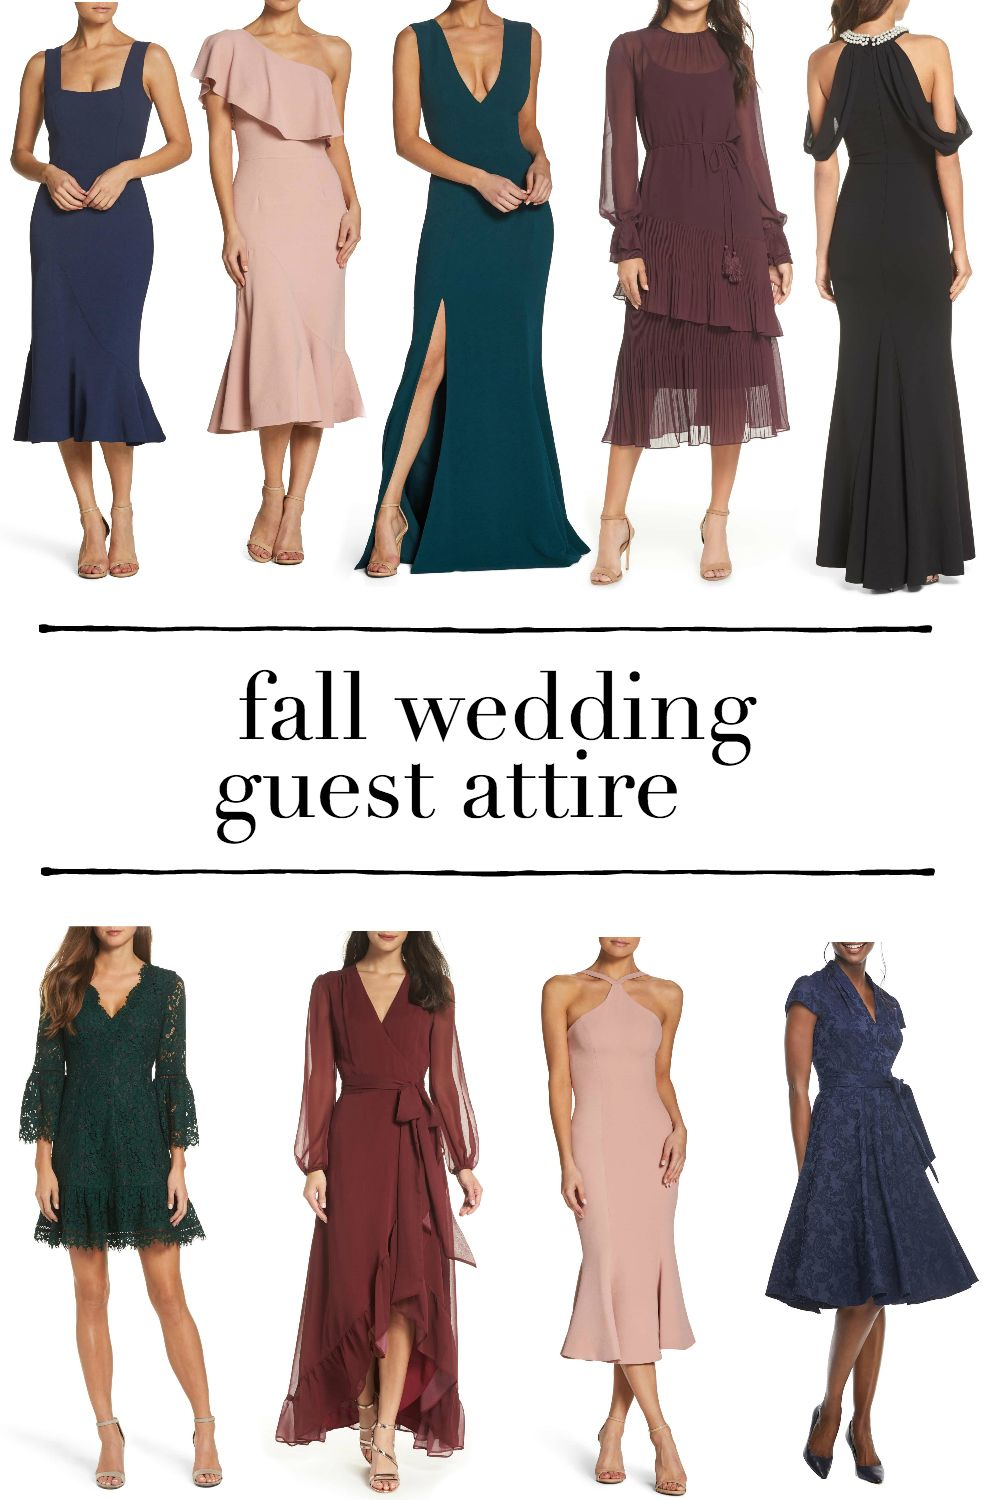 Fall Wedding Guest Attire Stephanie Sterjovski Fall Wedding Outfits Wedding Guest Outfit Fall Wedding Attire Guest